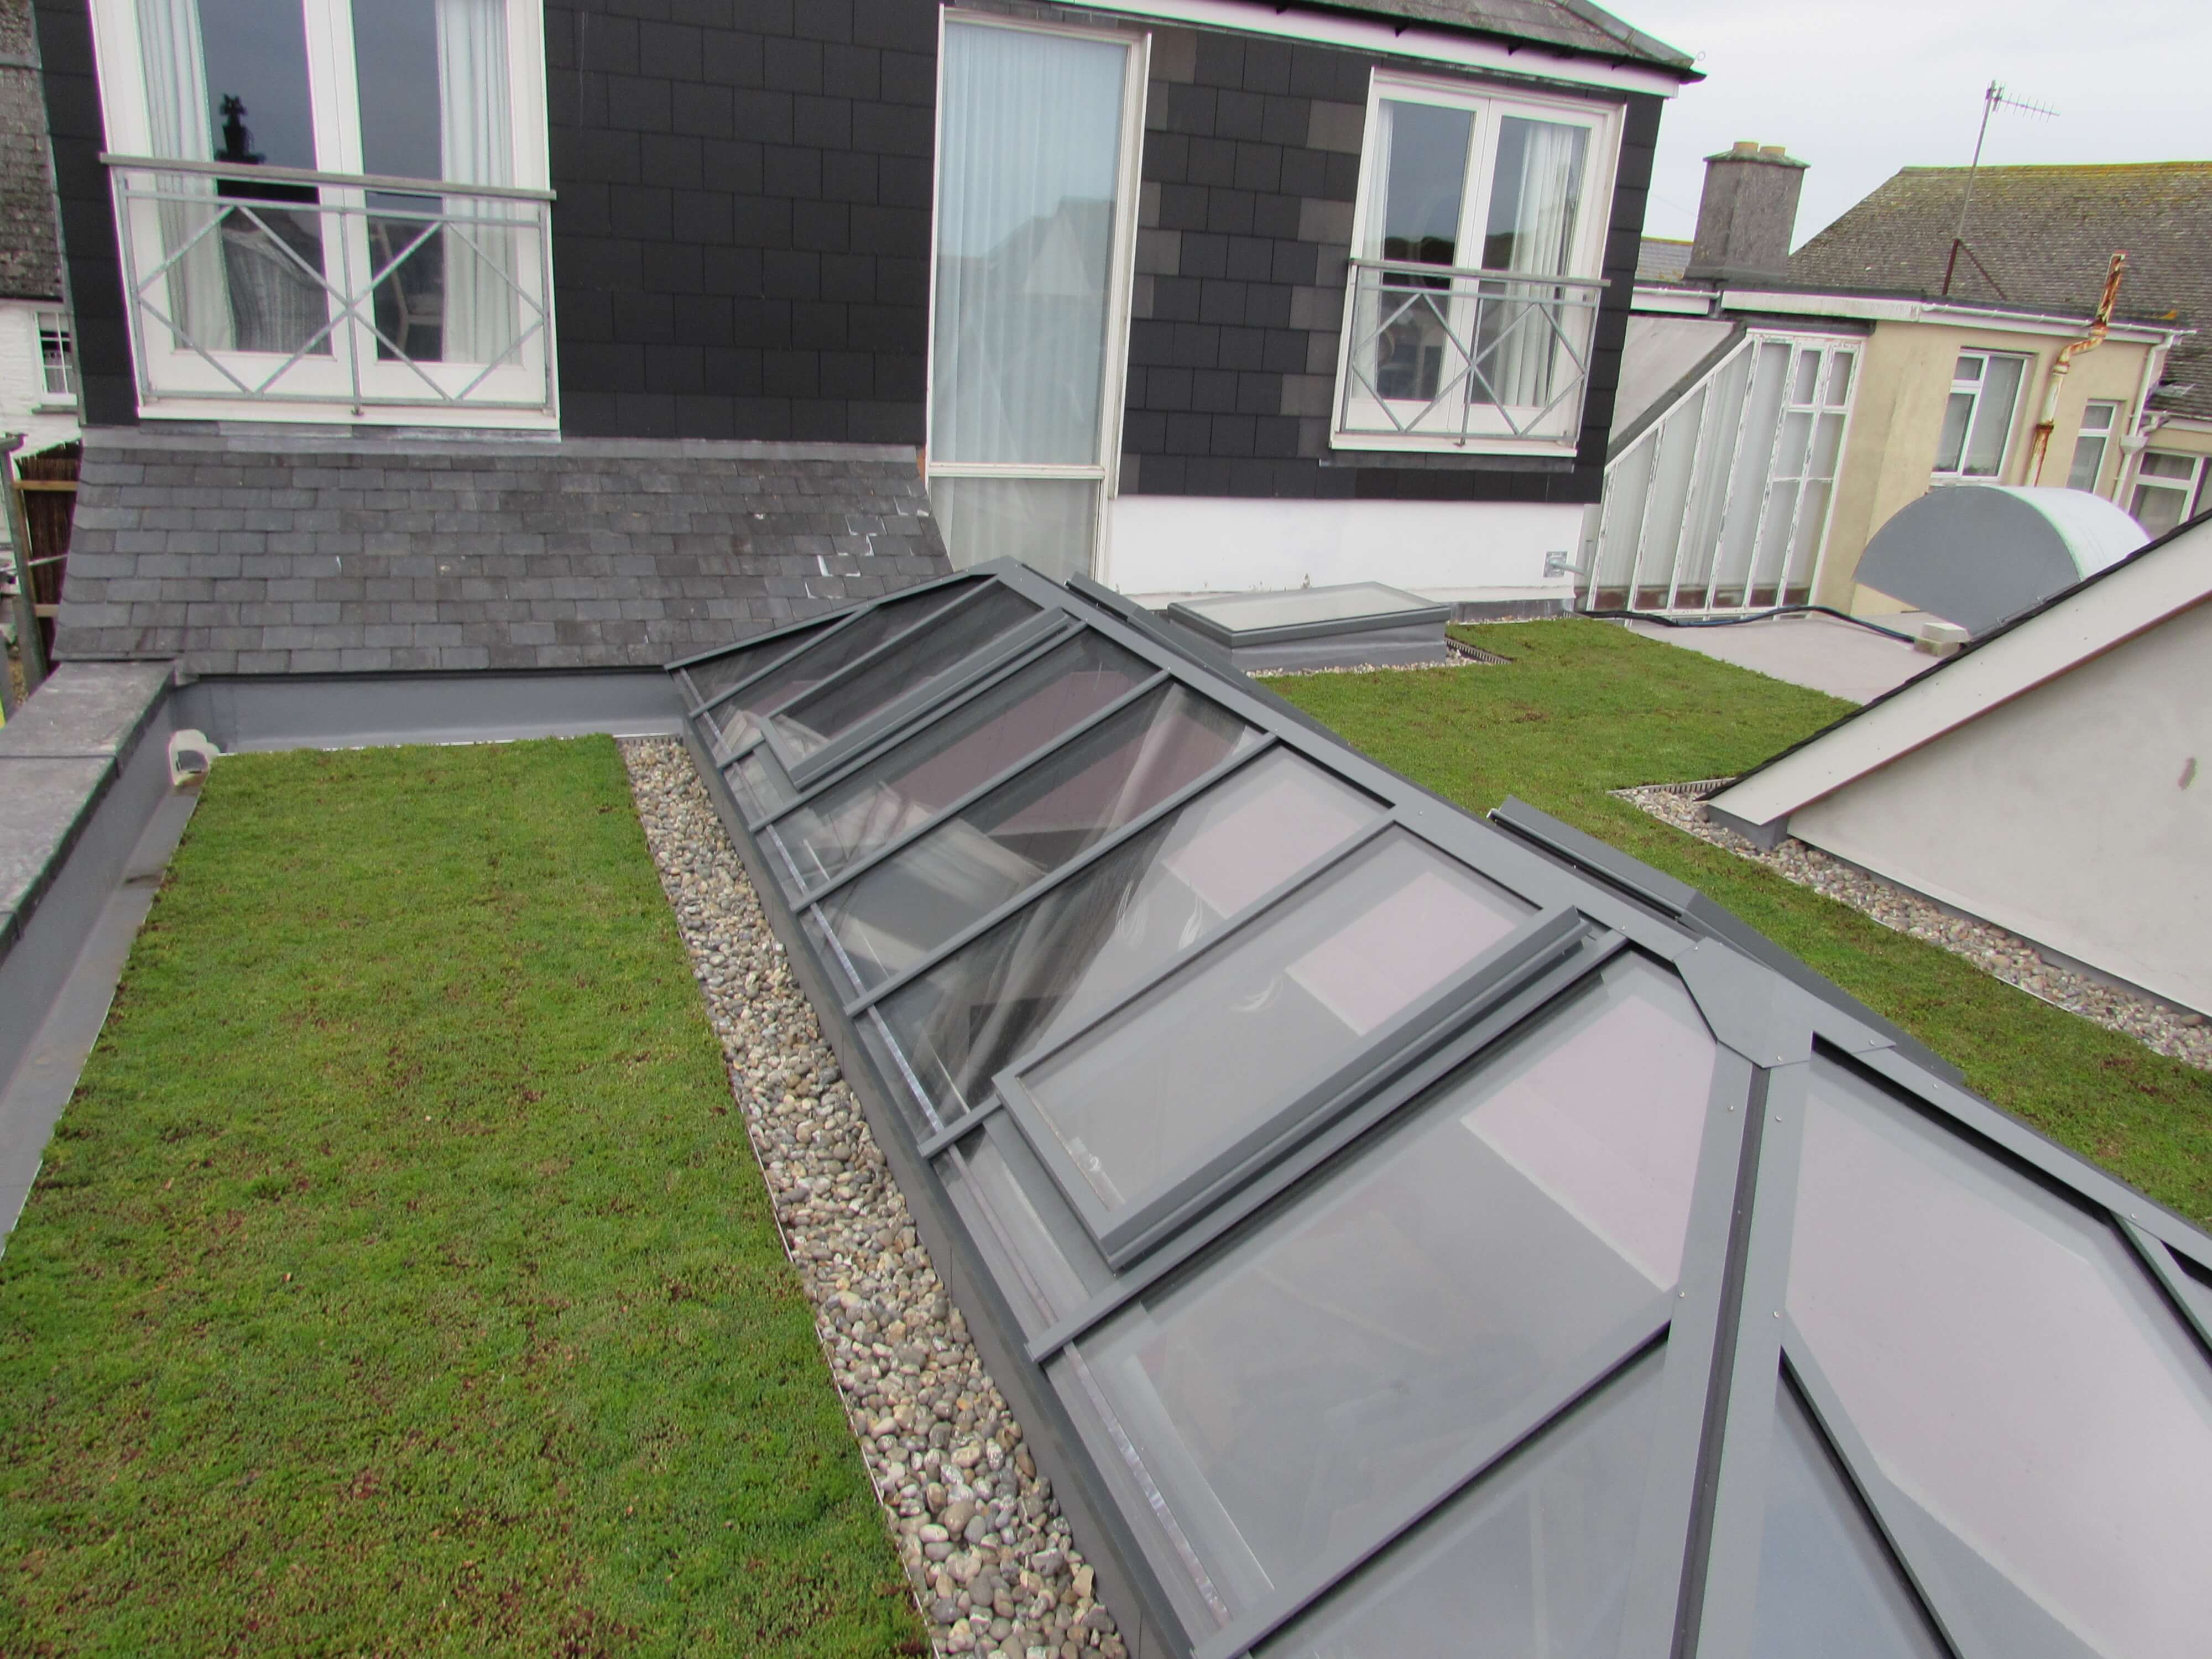 ST MAWES HOTEL COMPLETED IN THE NEW RENOLIT ALKORGREEN SYSTEM